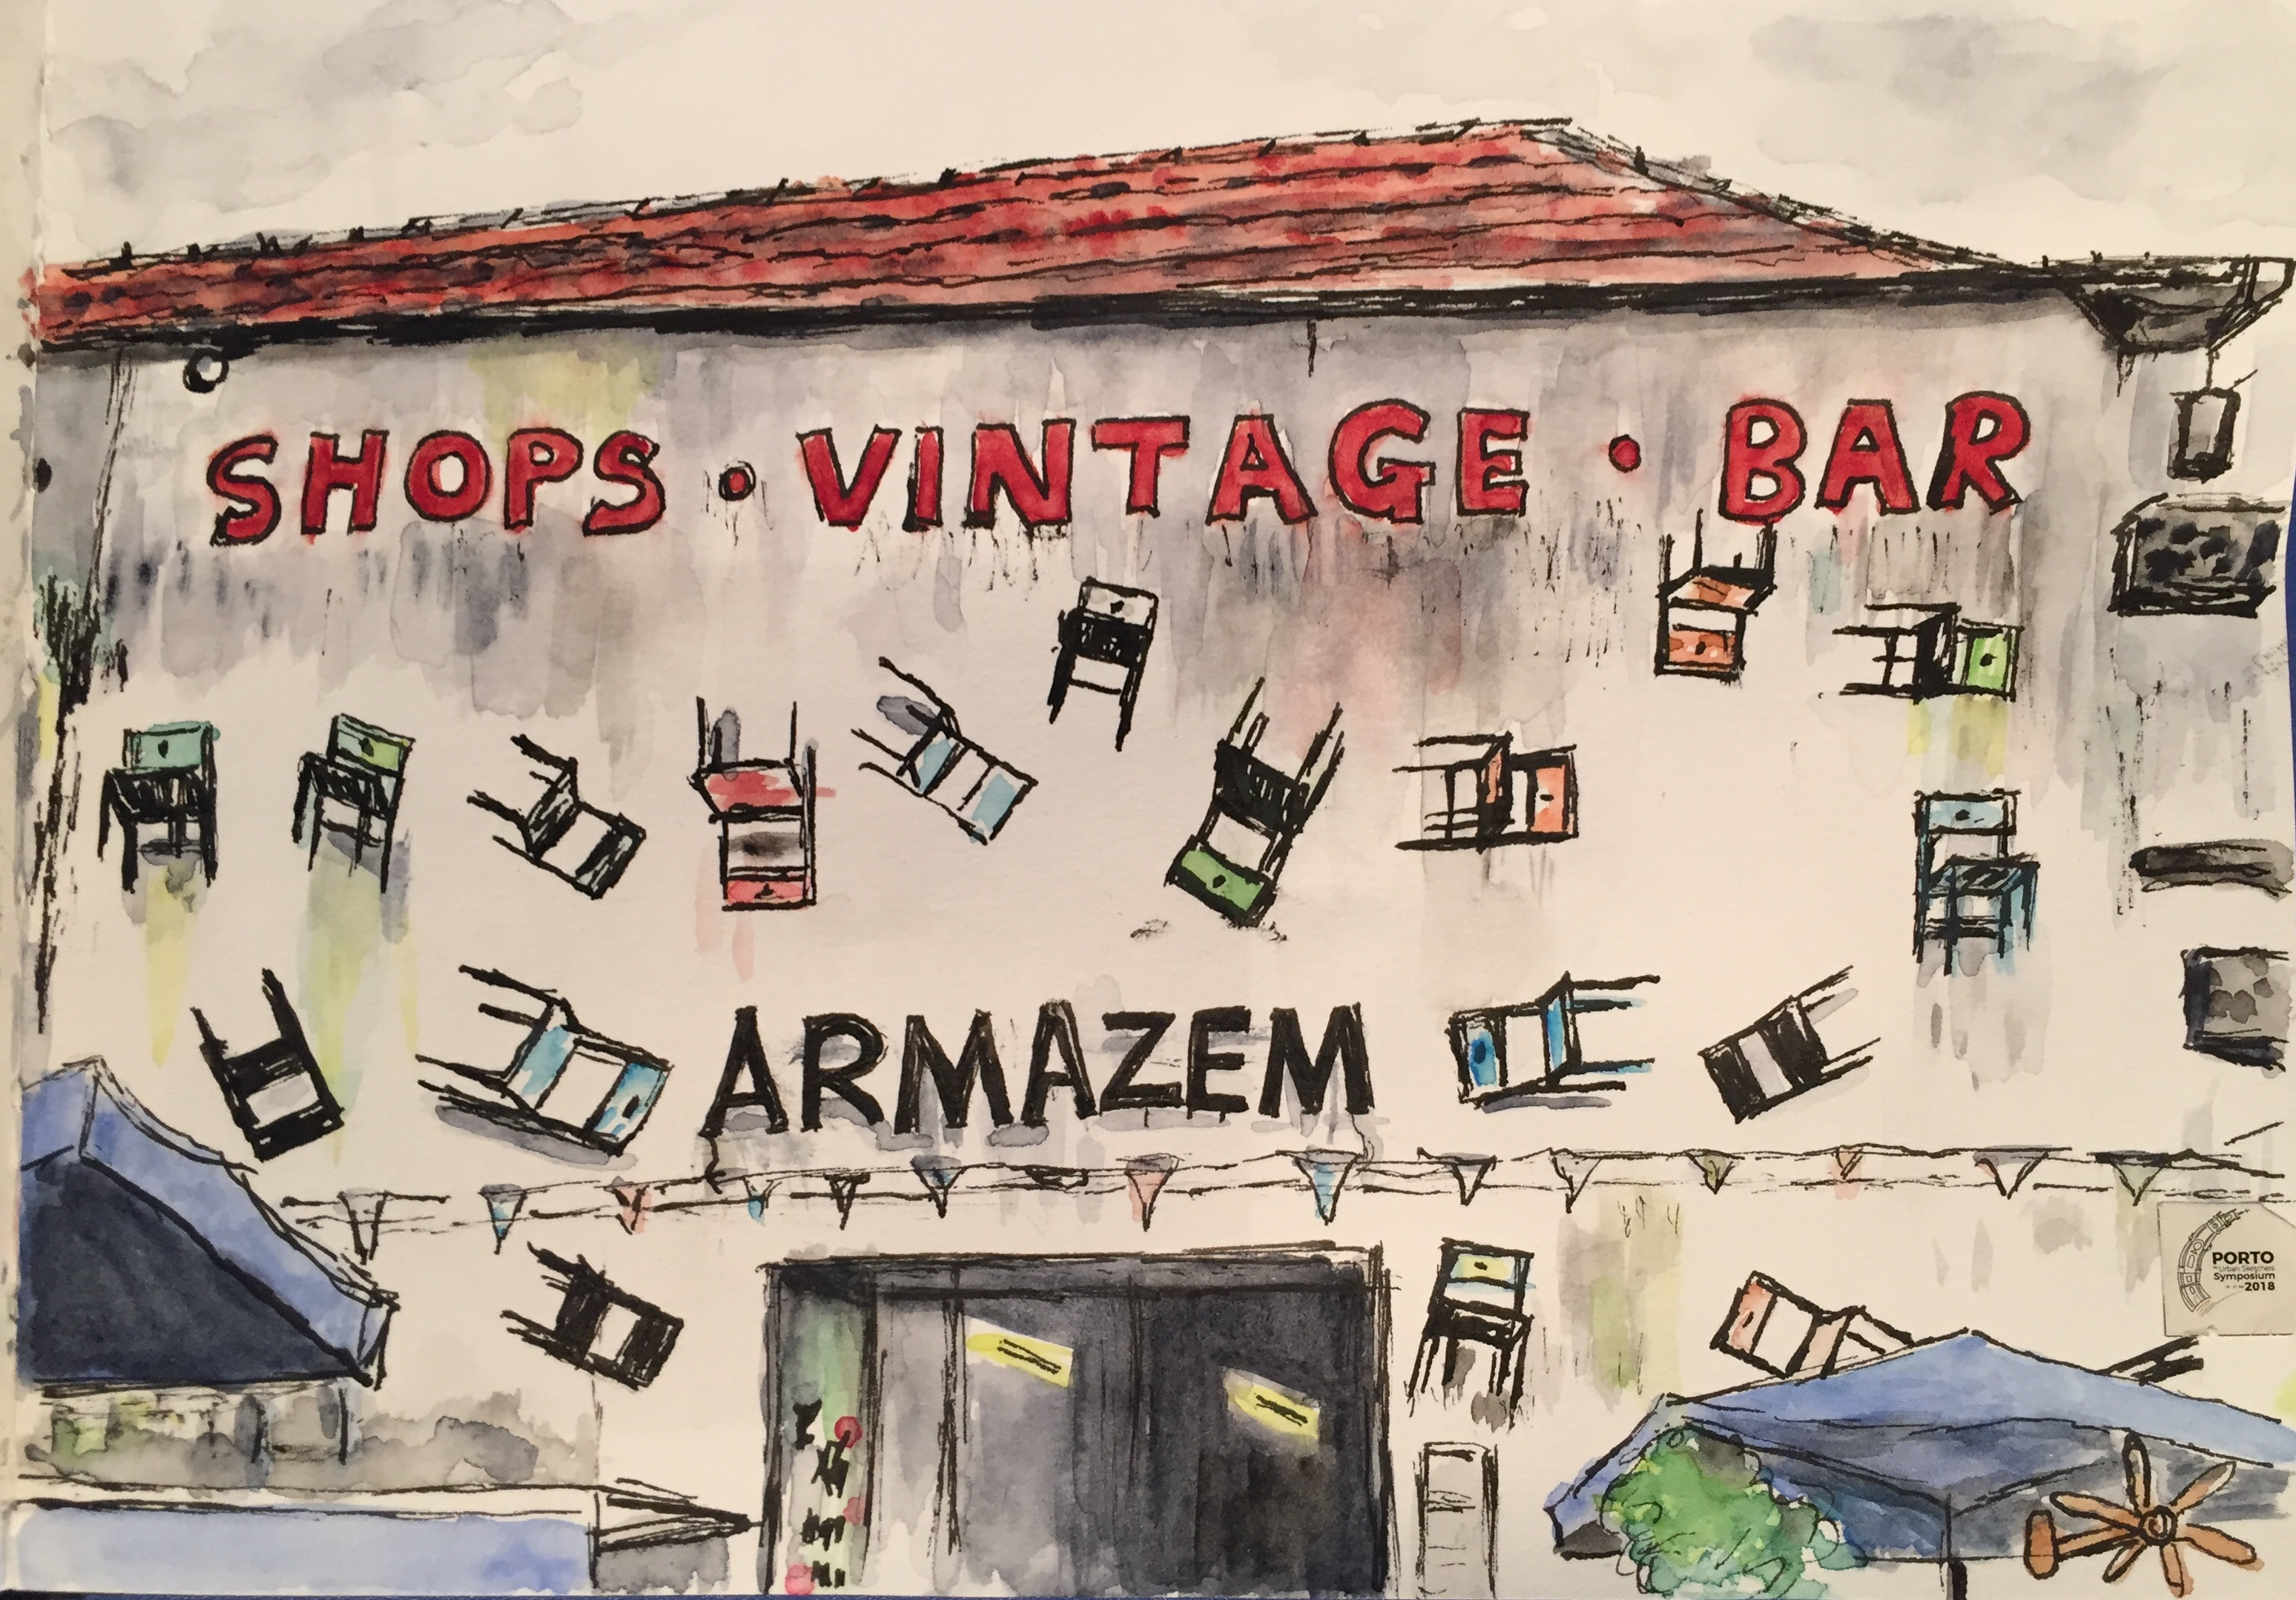 Vintage shops and bar in Porto